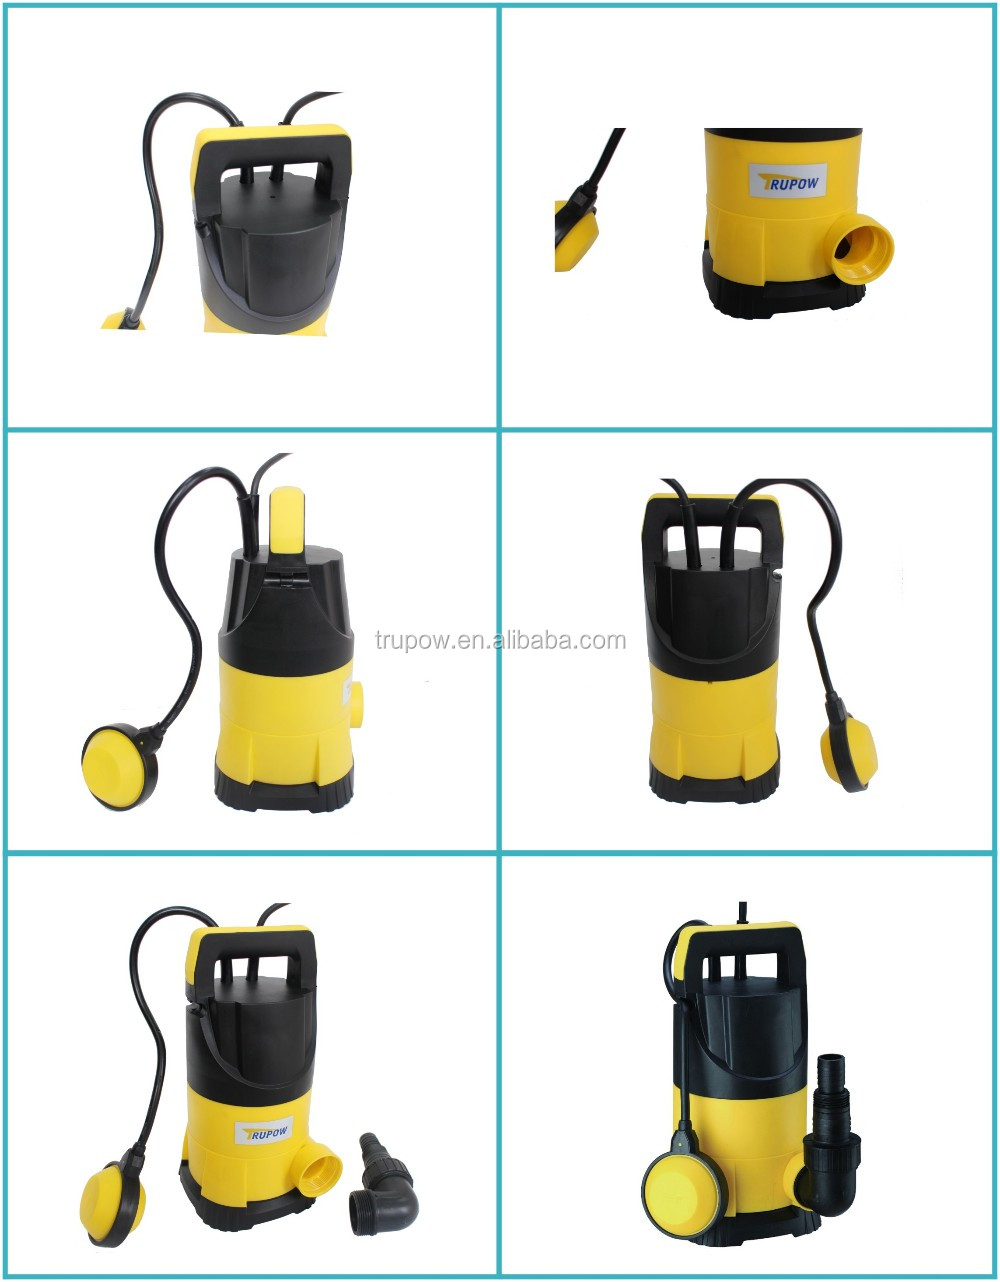 2017 China New Plastic Submersible Electric Clean Water Pump